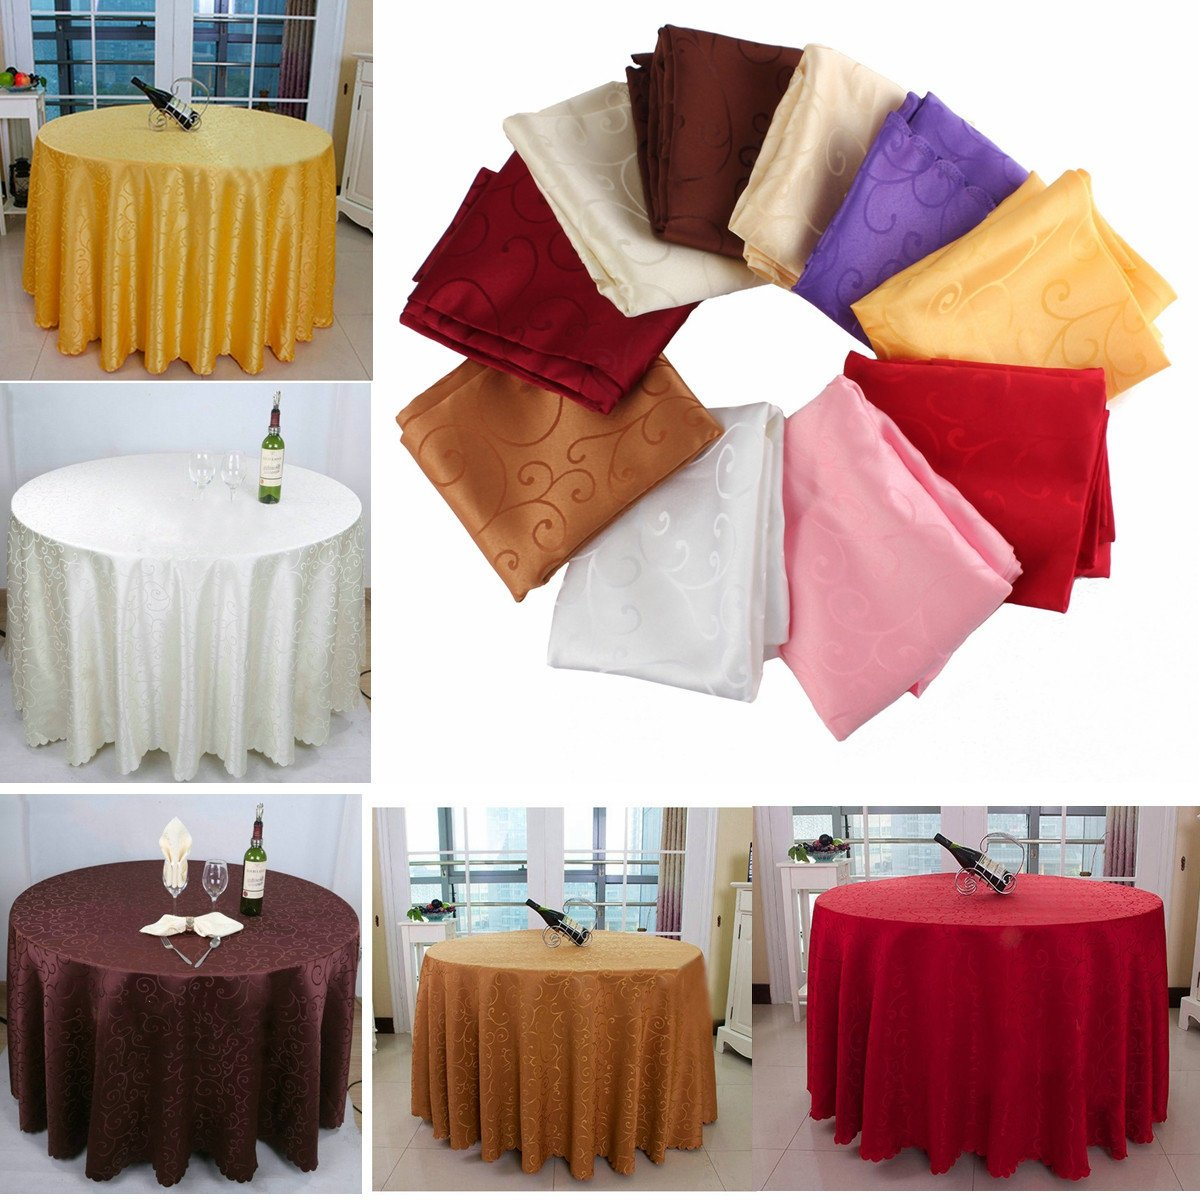 Bazaar 200cm Polyester Absorbent Round Tablecloth For Hotel Restaurant Wedding Decor